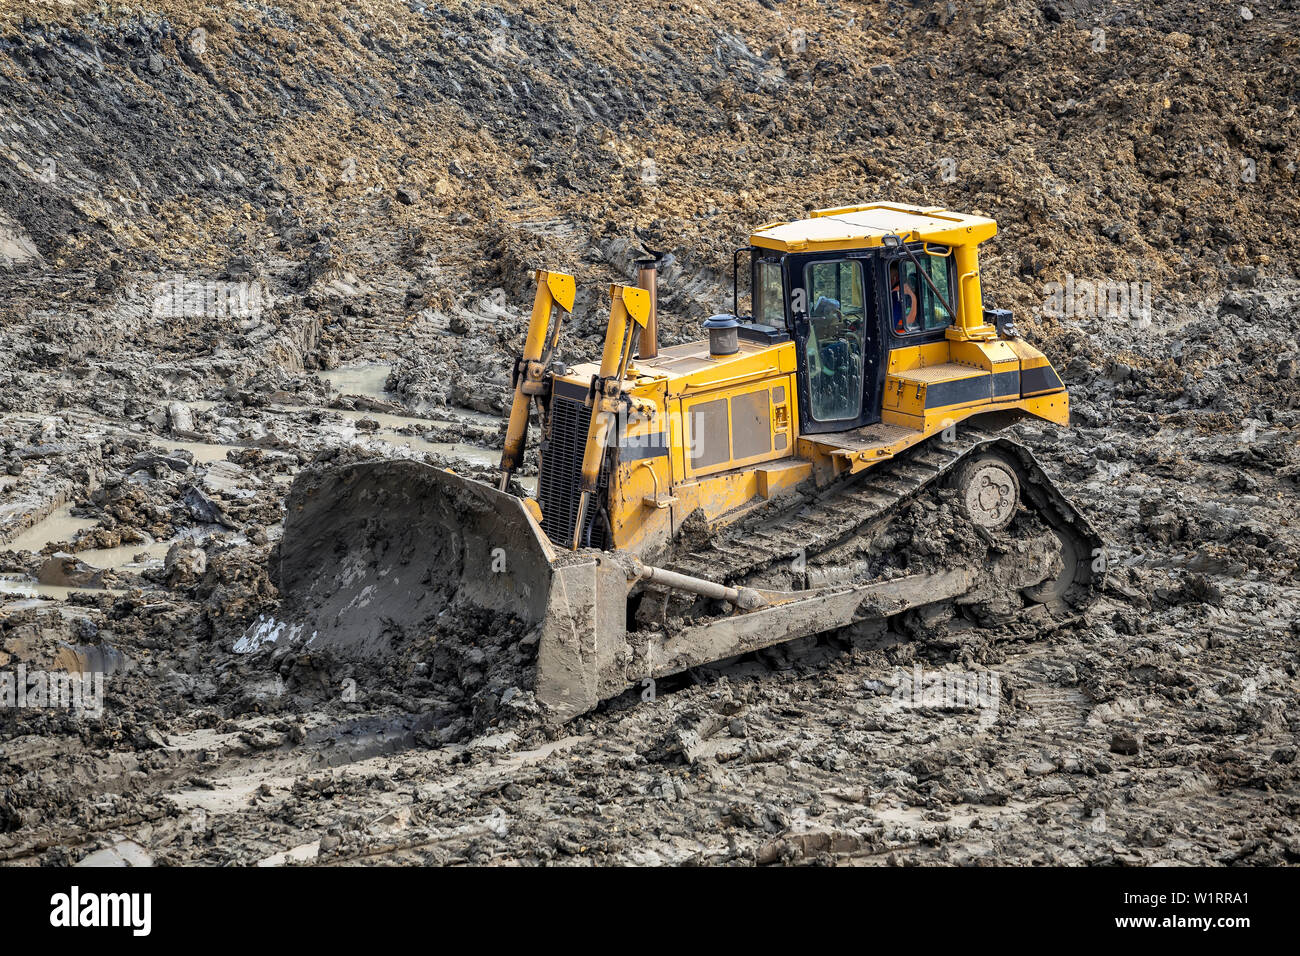 Yellow dozer pushes large piles of dirt on a construction site. - Stock Image